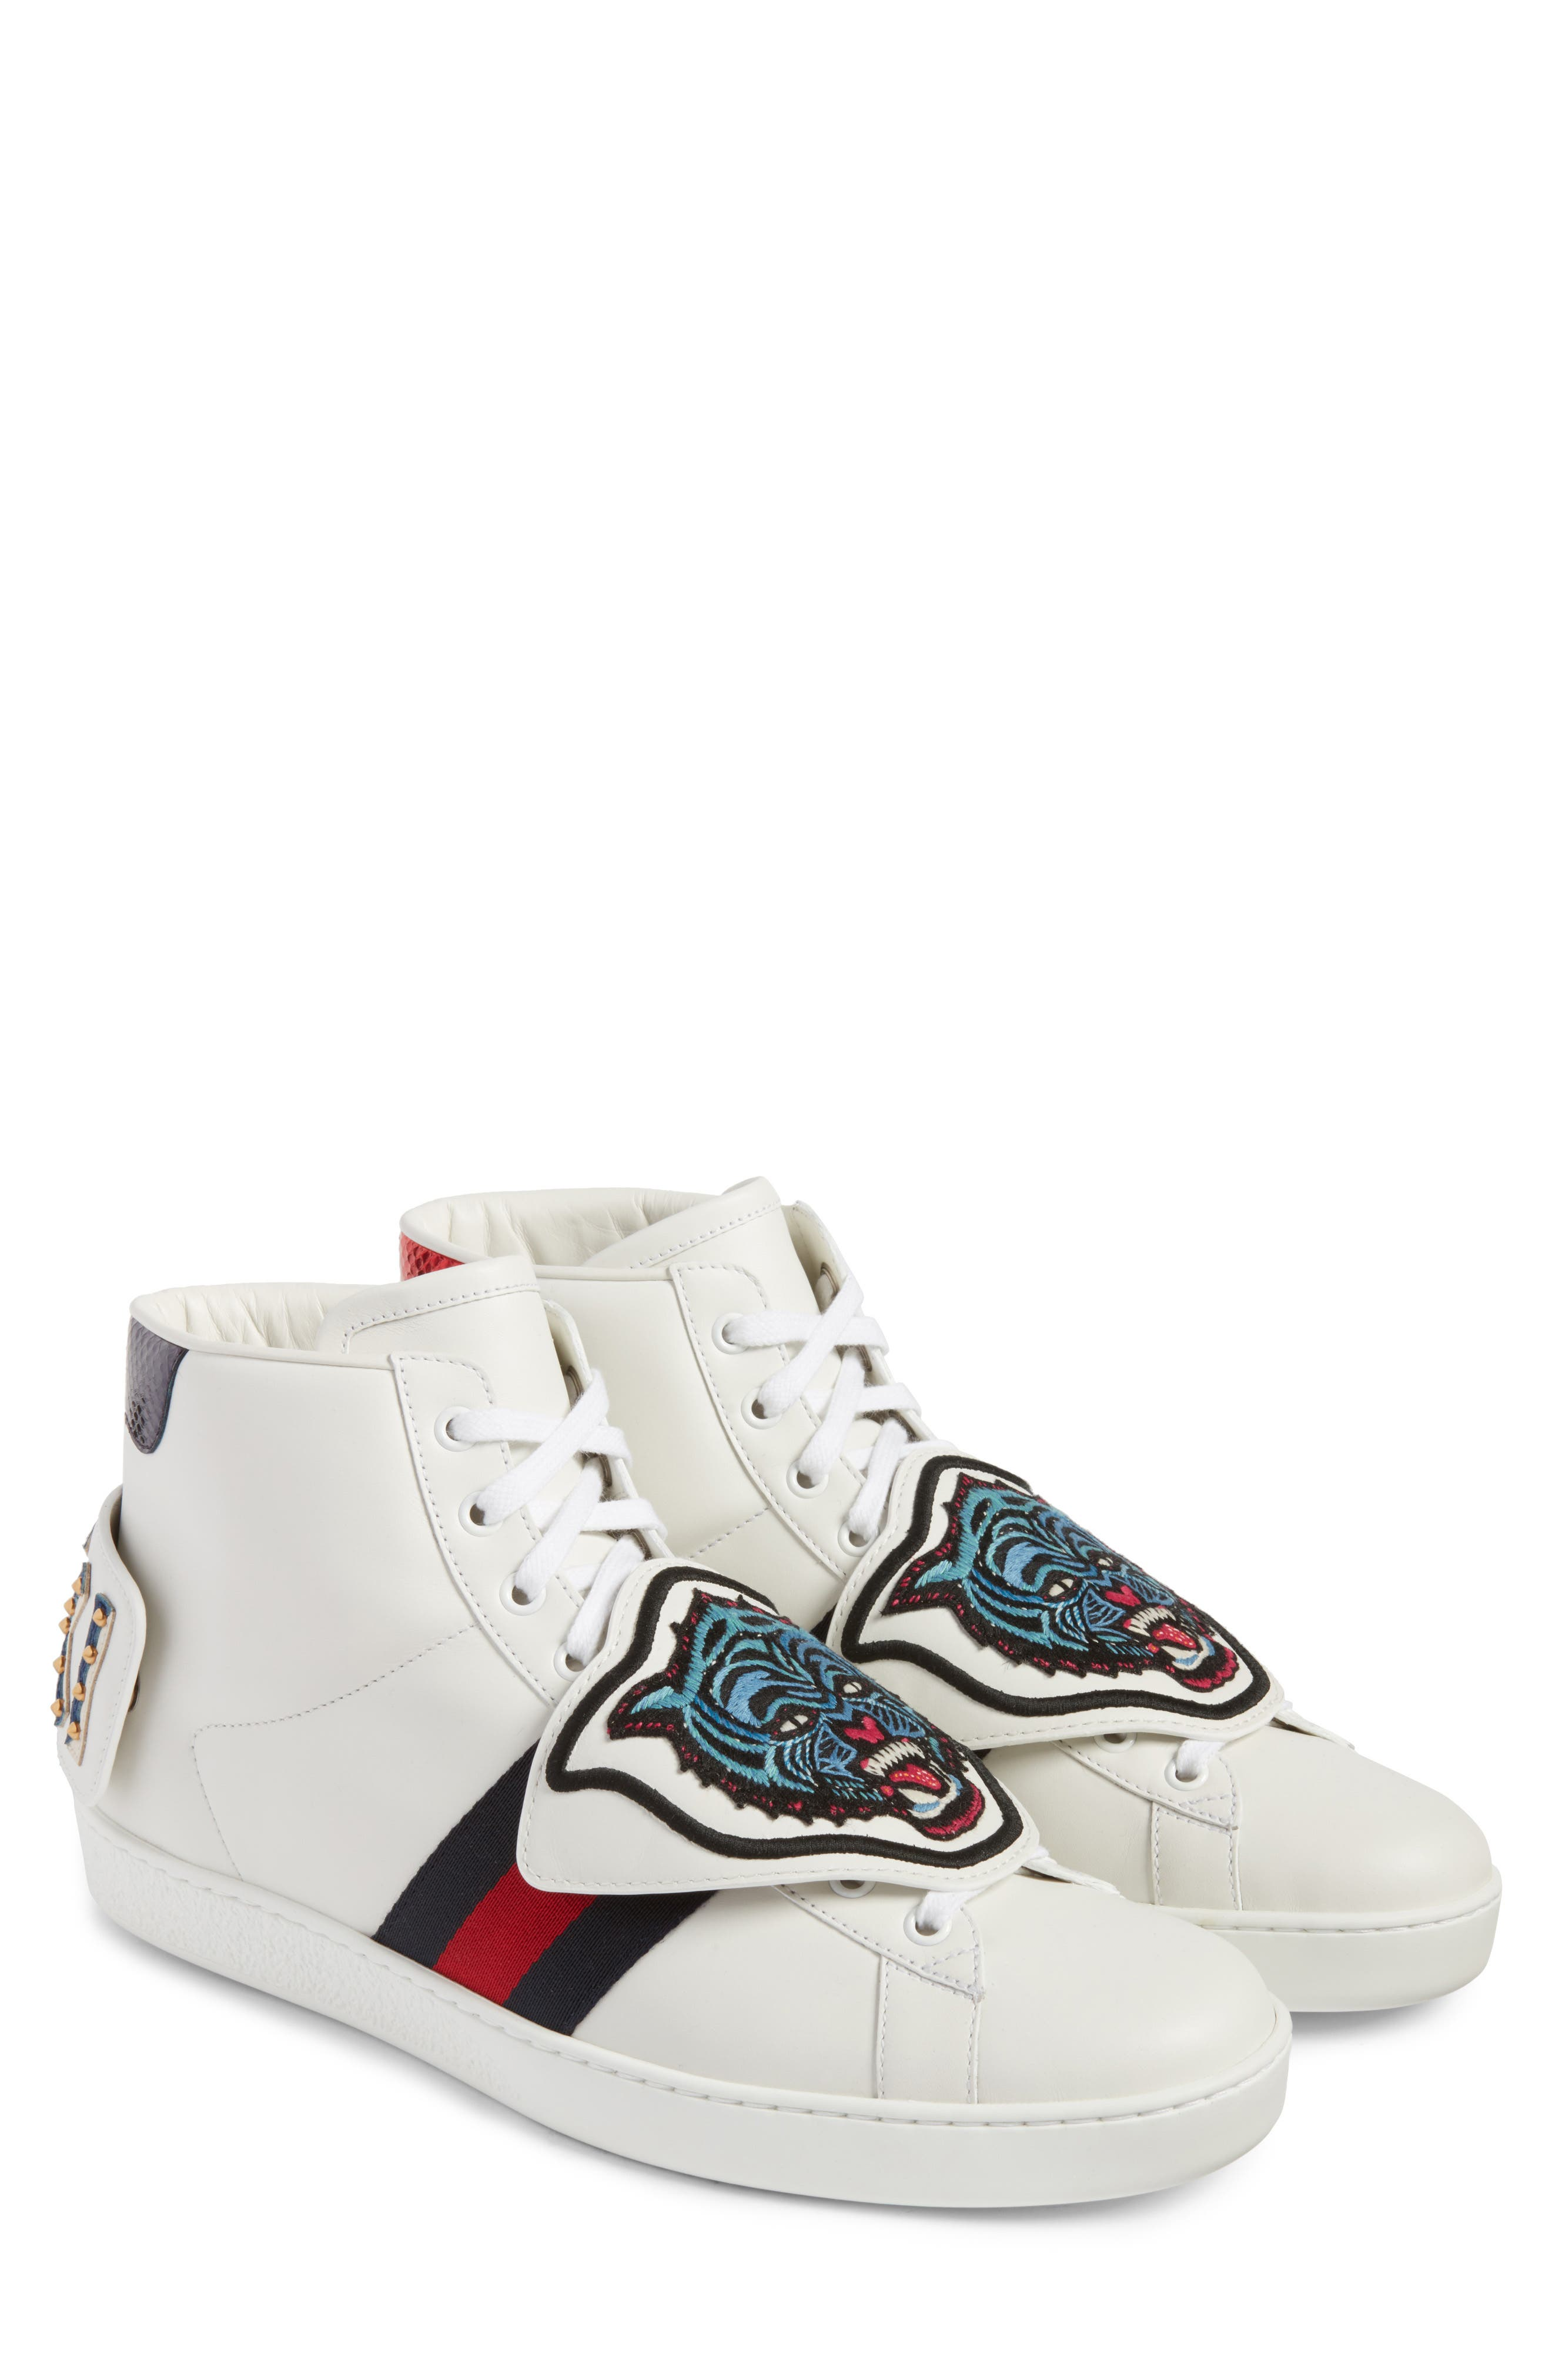 gucci shoes for men high tops. main image - gucci new ace jaguar embroidered patch high top sneaker (men) shoes for men tops g